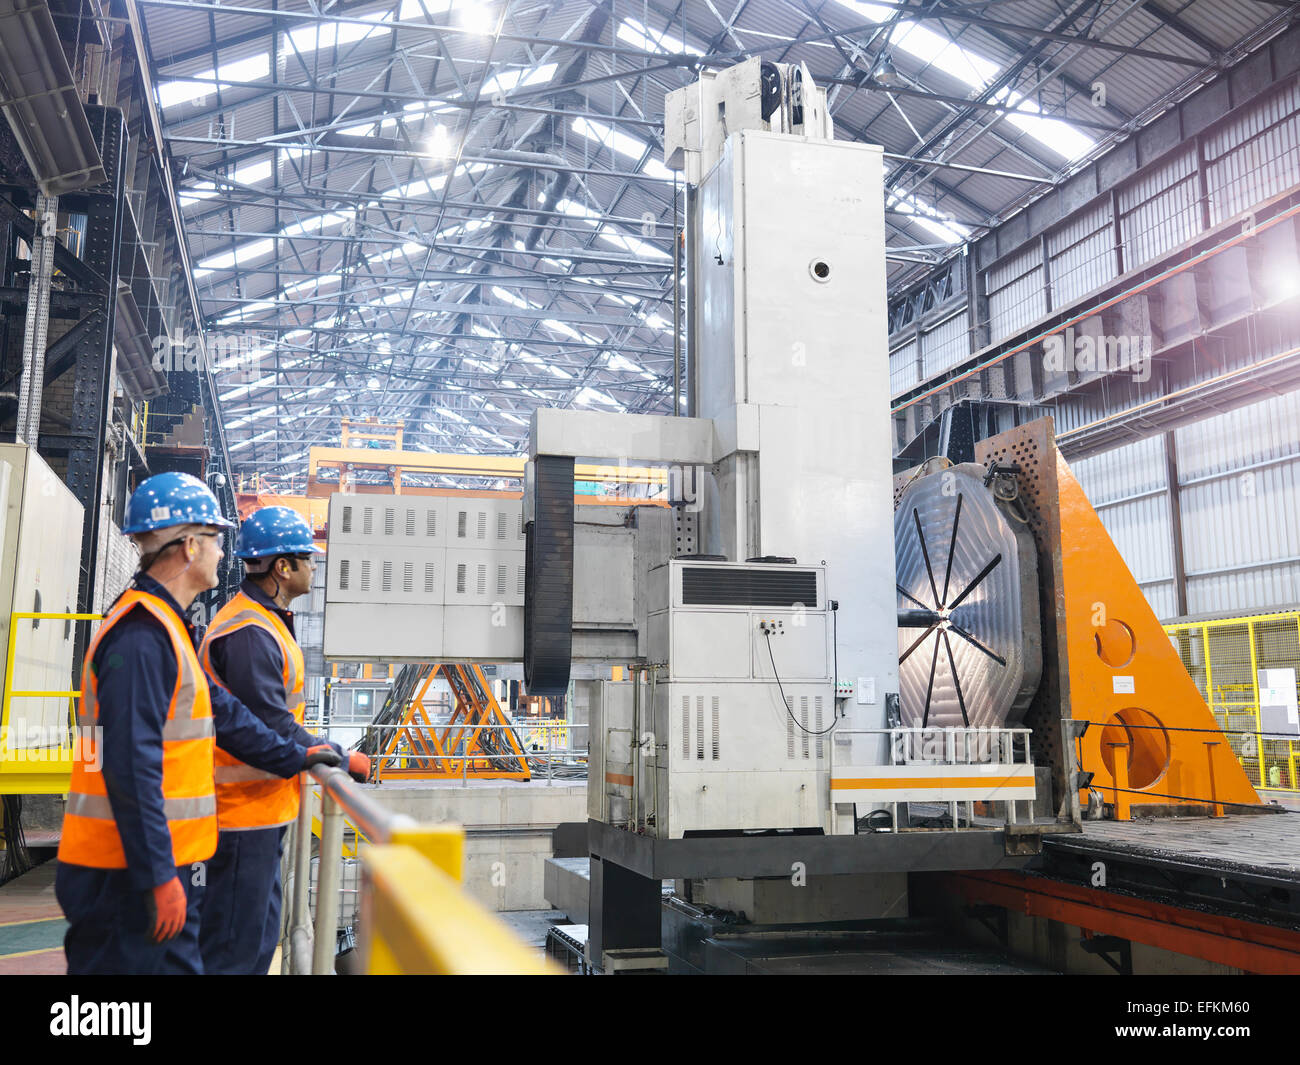 Steelworkers with gantry milling machine in engineering factory - Stock Image